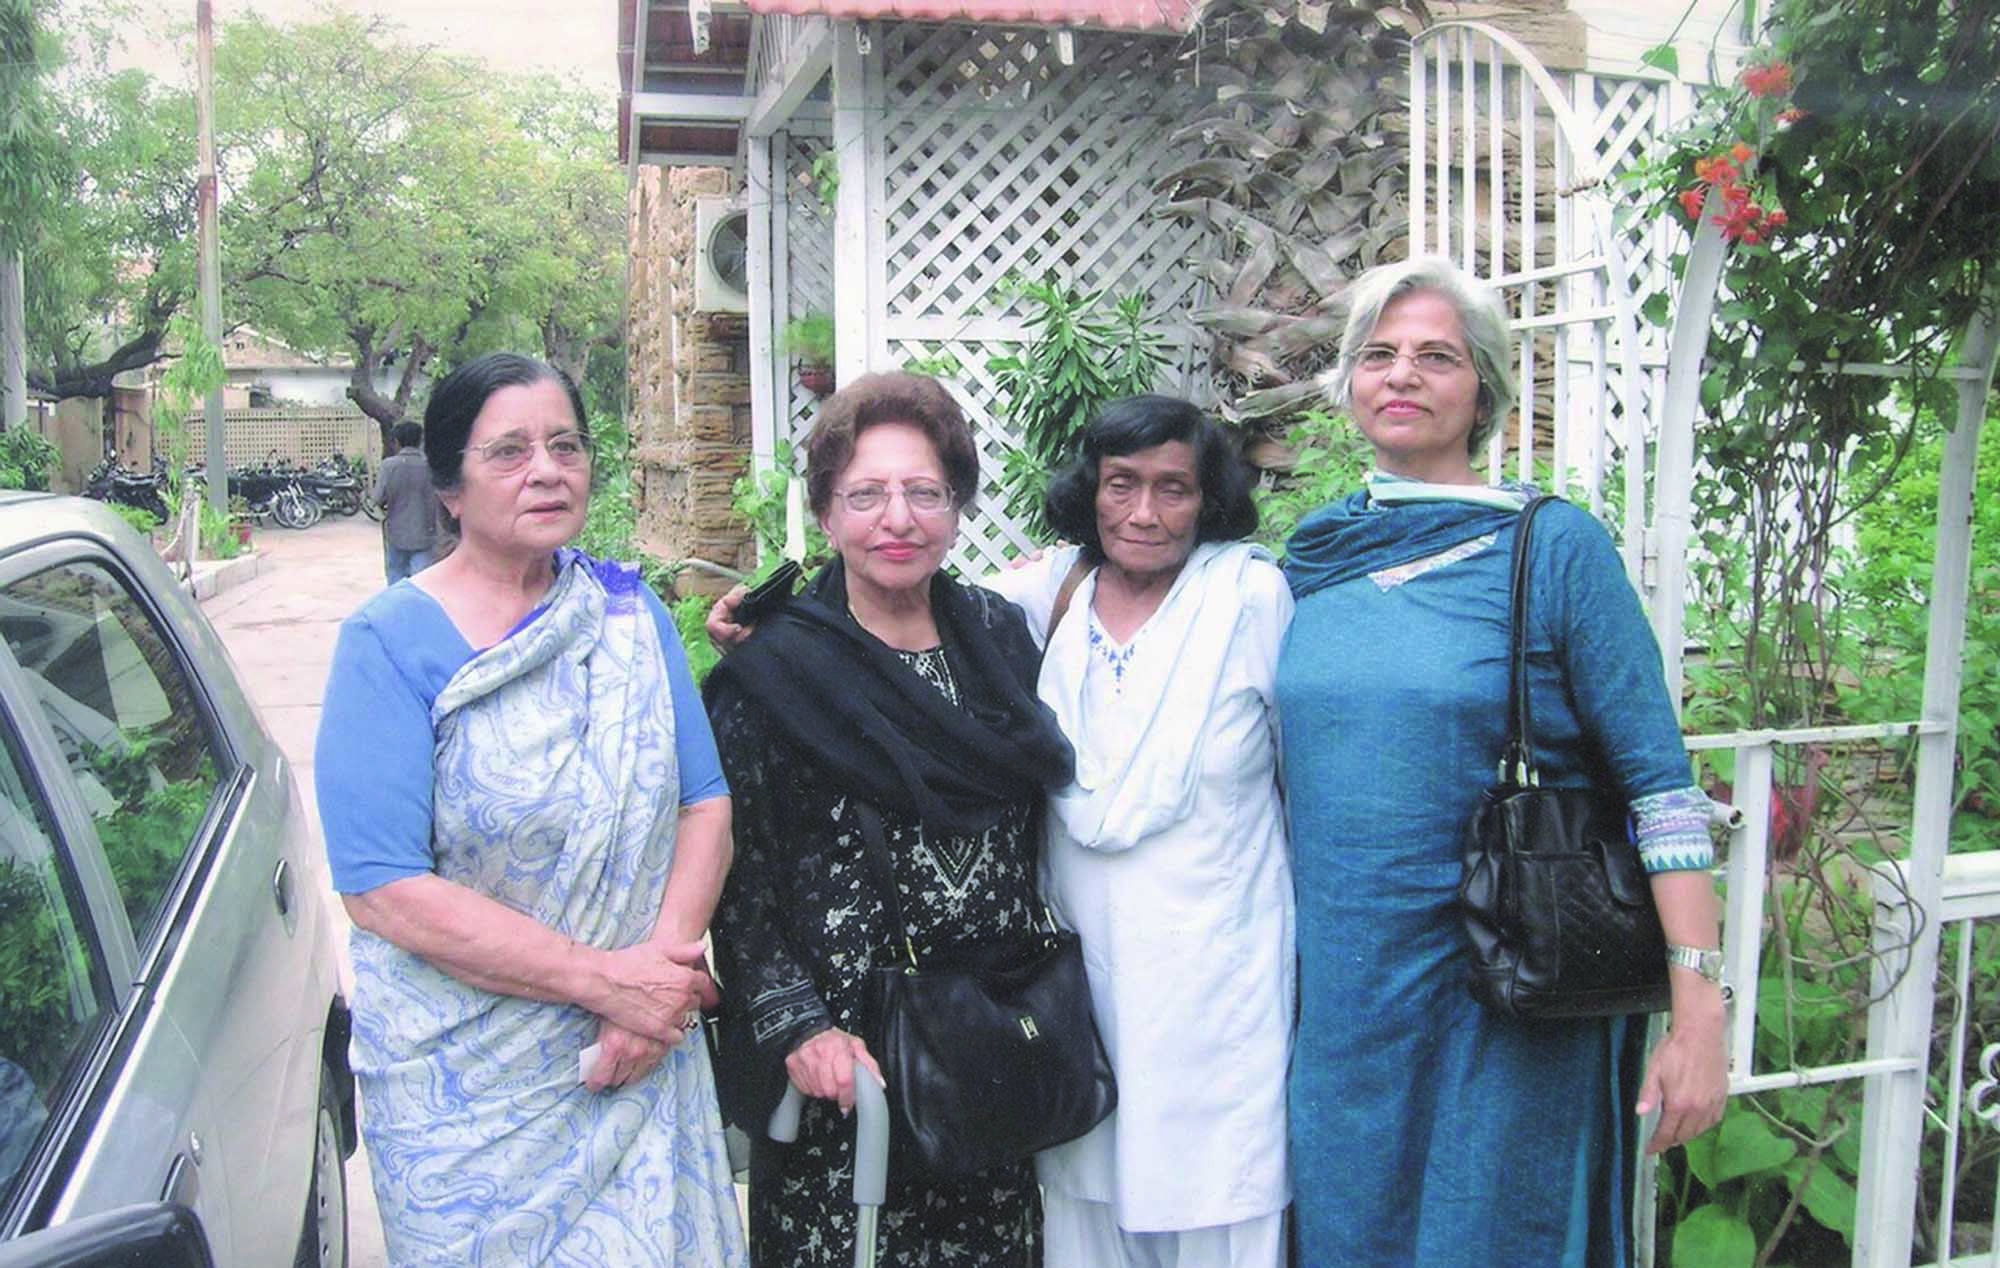 Those who started early and made their mark included (from right) Zubeida Mustafa, Naushaba Burney and Anis Mirza.